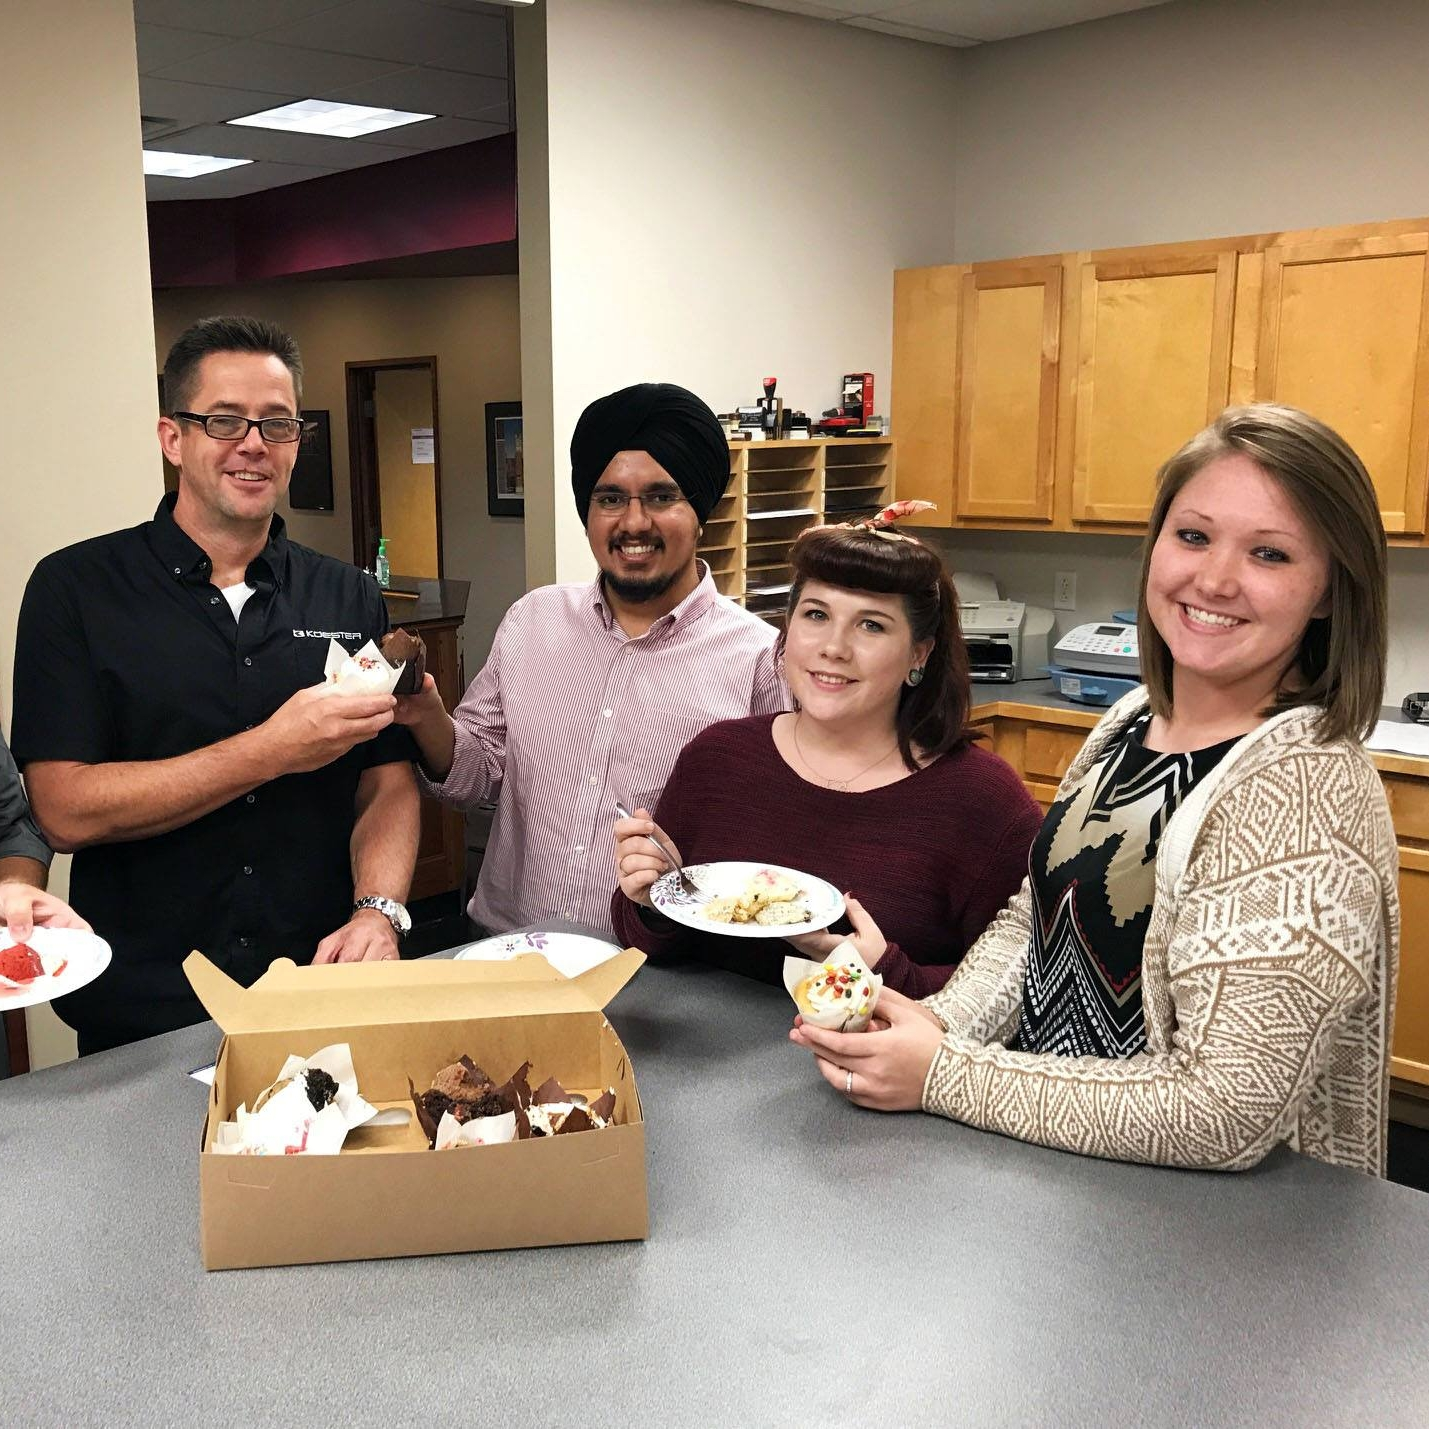 October 10, 2018   Thank you to Iowa Demolition for dropping off a hump day pick-me-up for our team. Scratch Cupcakery did not disappoint. 🐪🍰